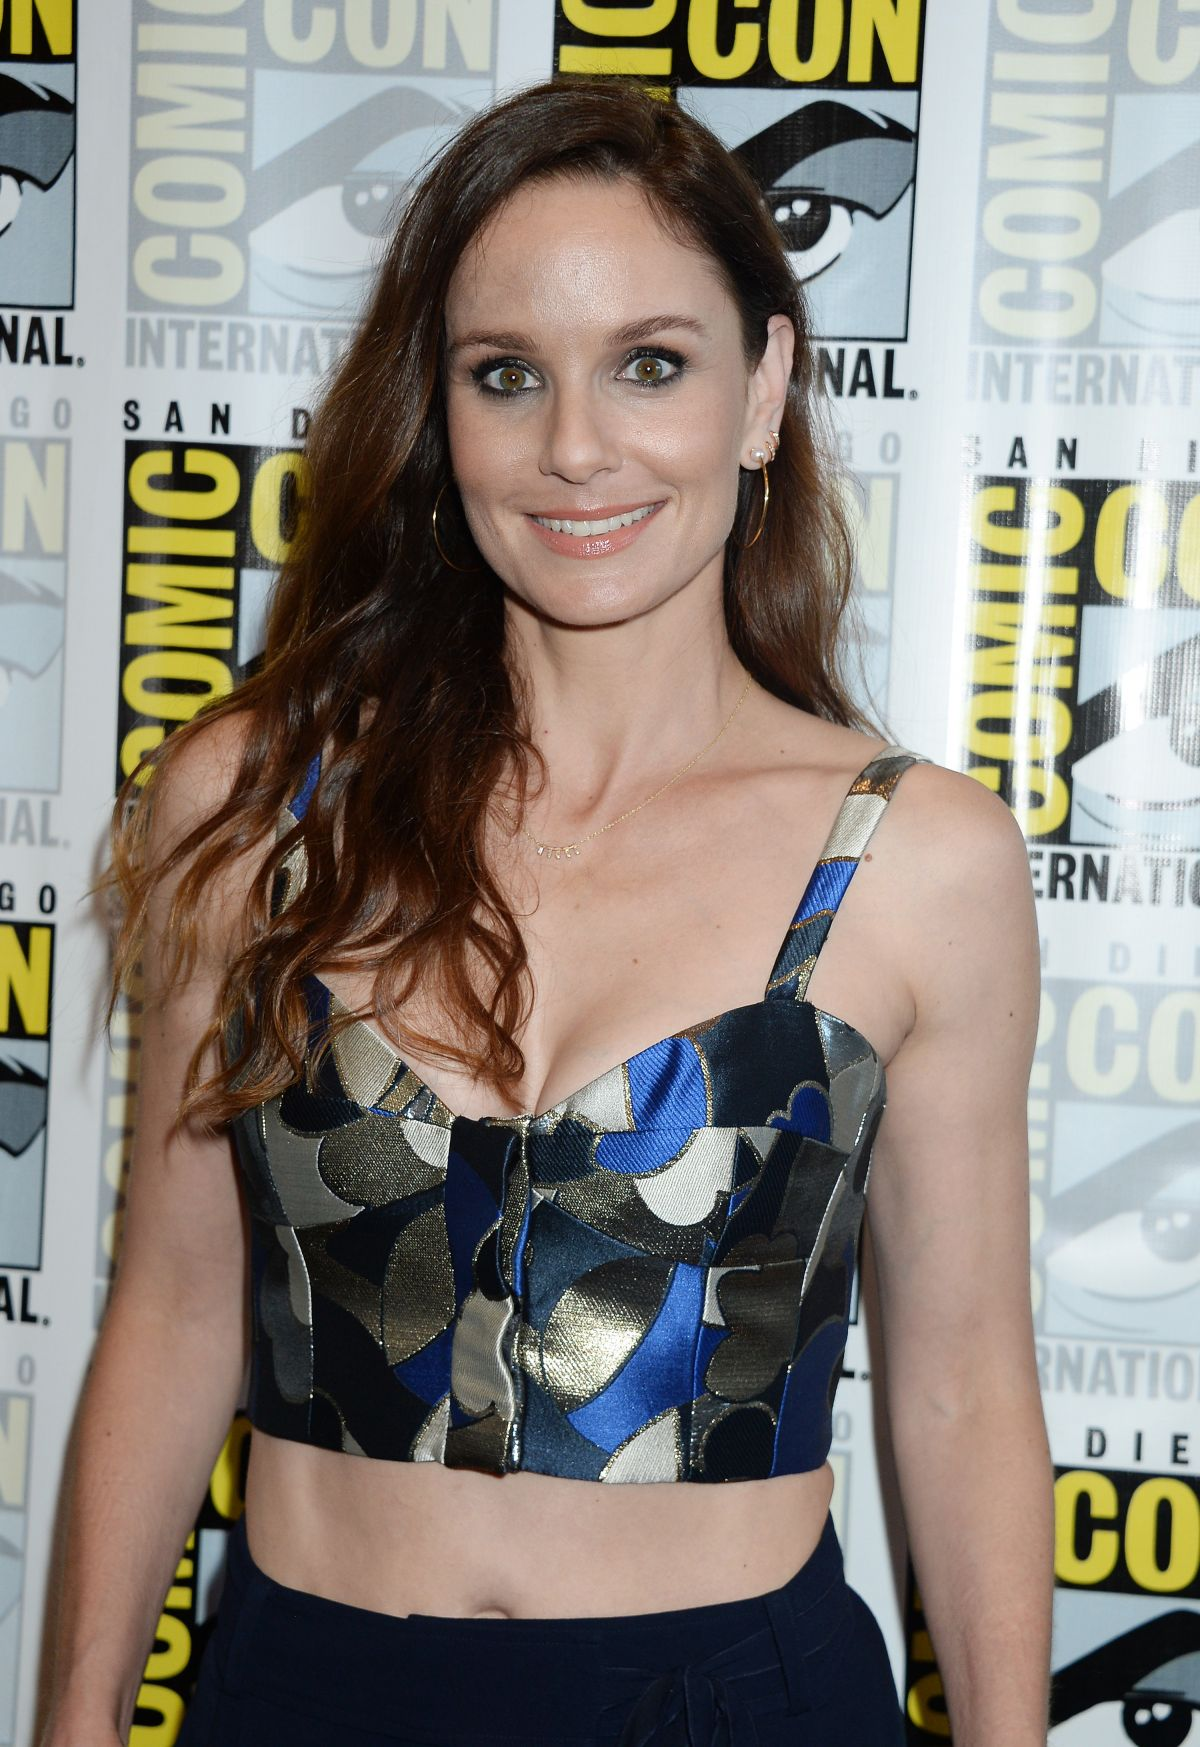 SARAH WAYNE CALLIES at Colony Panel at Comic-con International in San Diego 07/20/2017